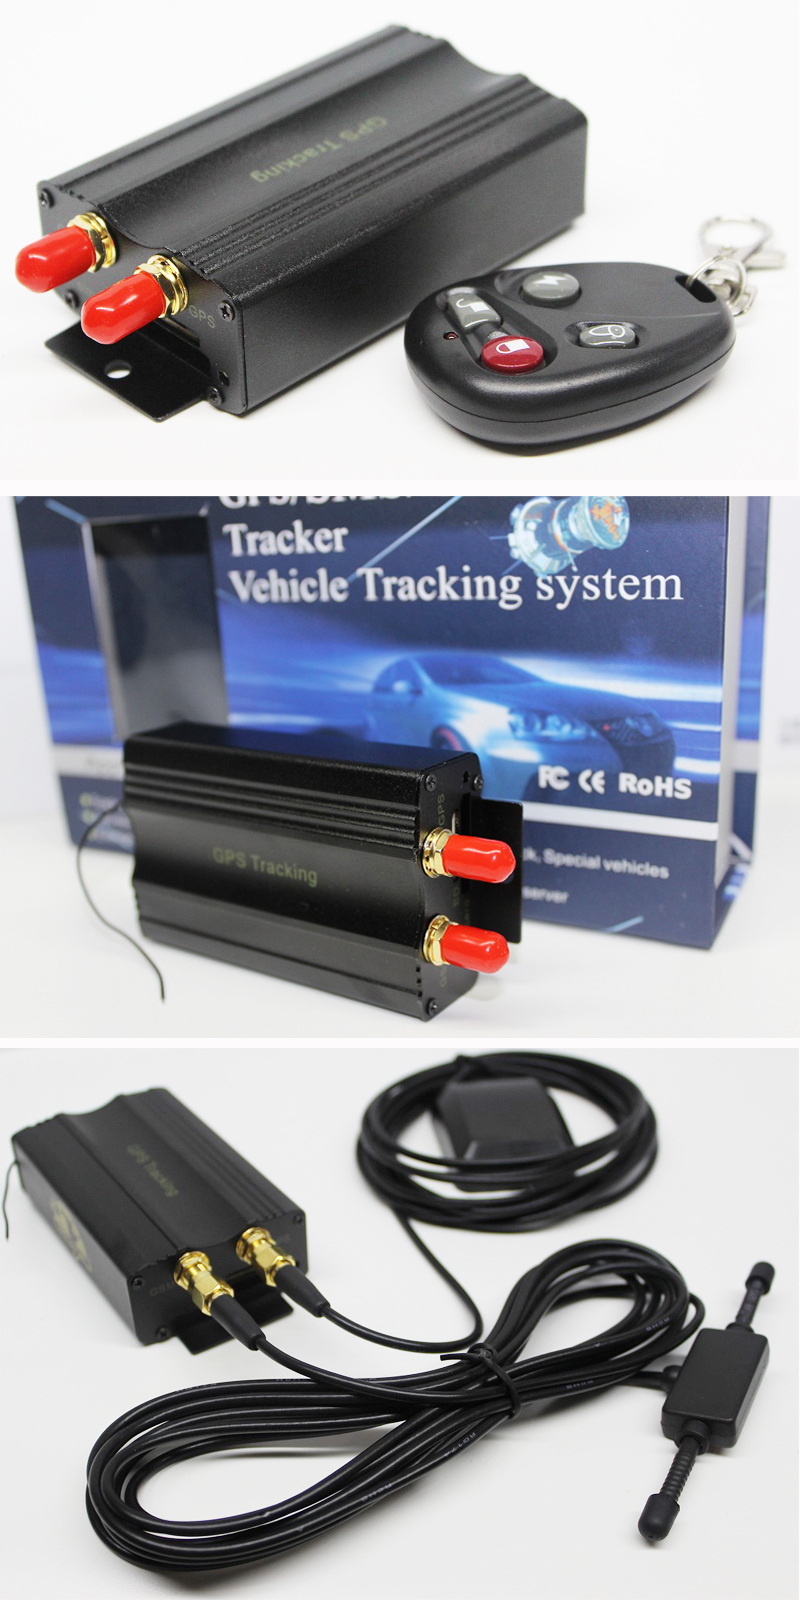 Car Gps System Motorcycle Vehicle Global Smallest Gsm Gprs Tracker in addition Gps Tracker Pen as well Trackerguard Lone Worker Gpa Gps Panic Alarm P61 besides Gps in addition Spy Hidden Camera Heymoko Round 1080p Full Hd 6 Led Infrared Night Vision Motion Detection Portable Spy Voice Video Recorder Home Surveillance Camera Dv. on smallest gps tracking system